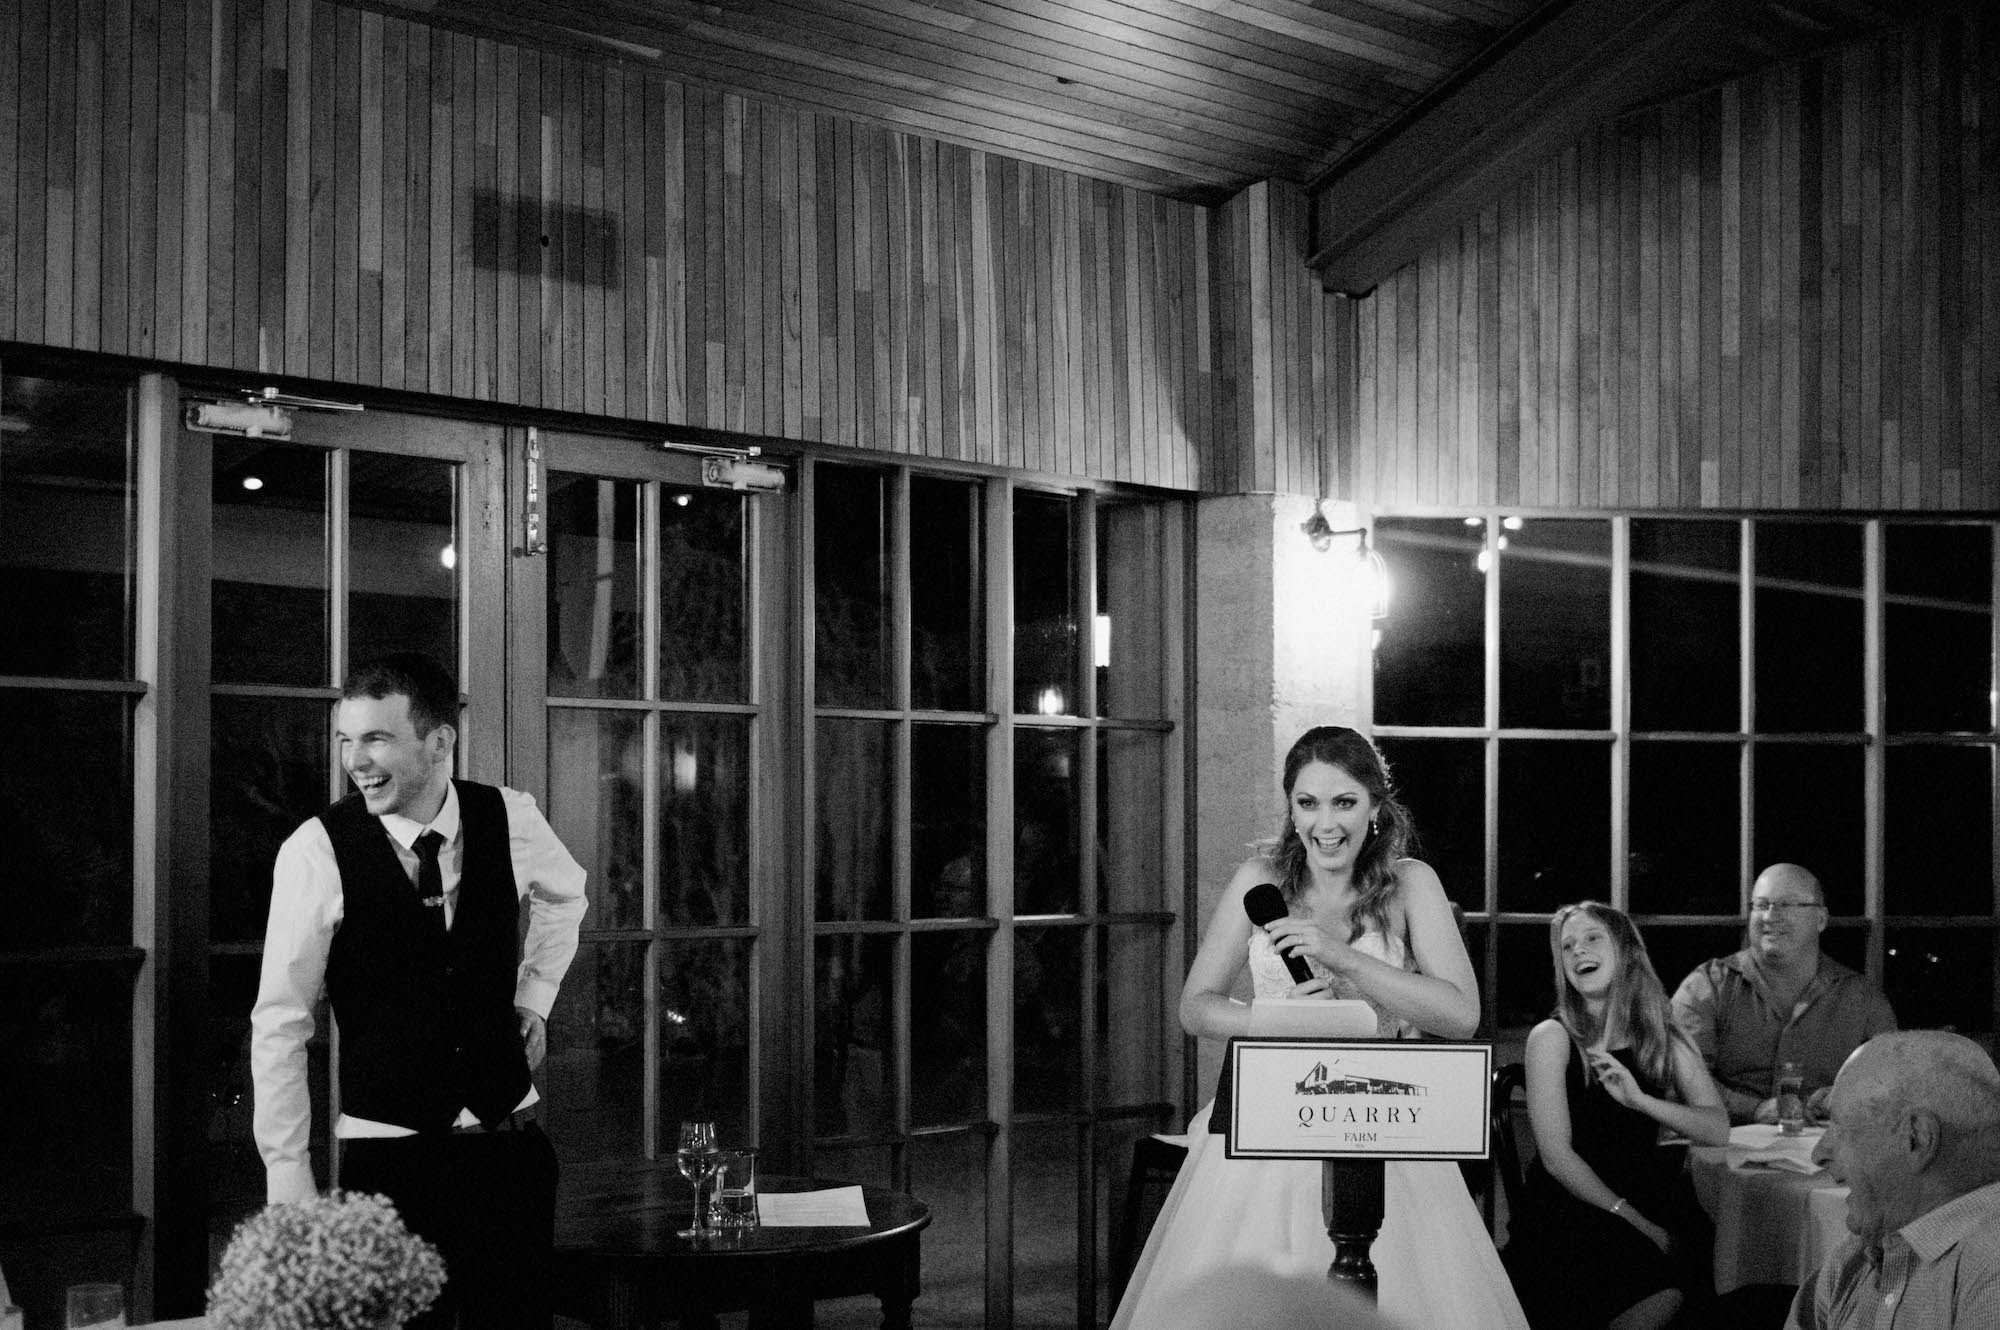 A black & white wedding photo of the bride & groom laughing during the bride's speech at their Byford wedding.